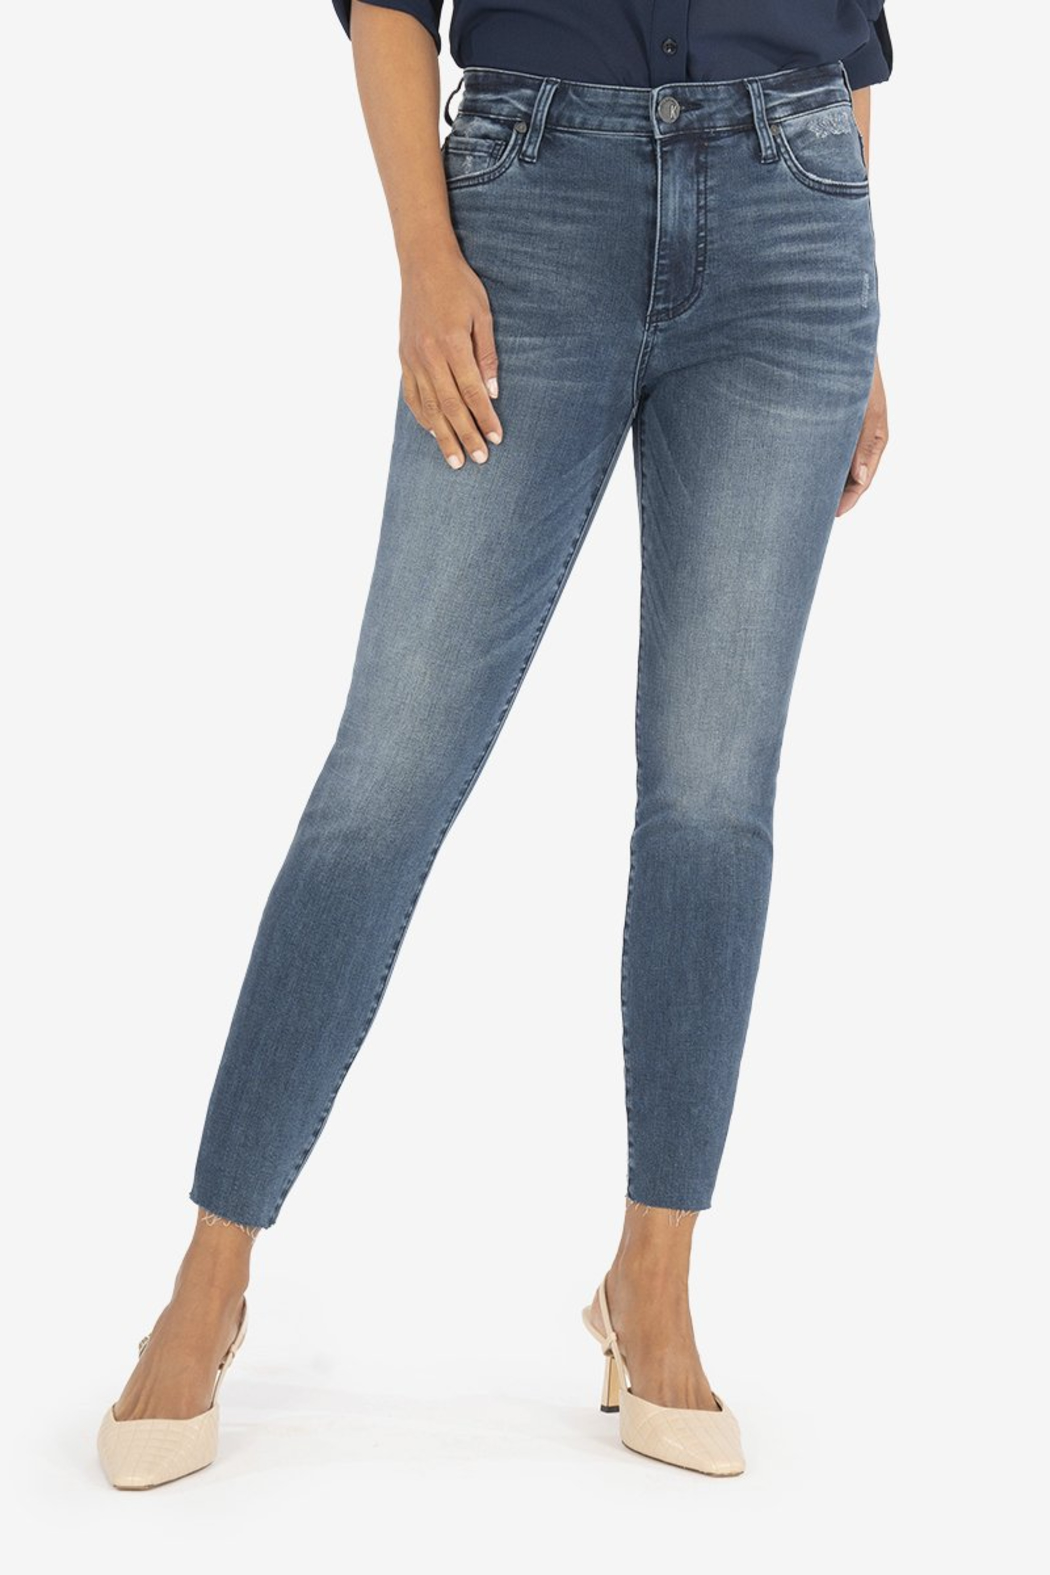 KUT CONNIE H/R ANKLE SKINNY - Main Image